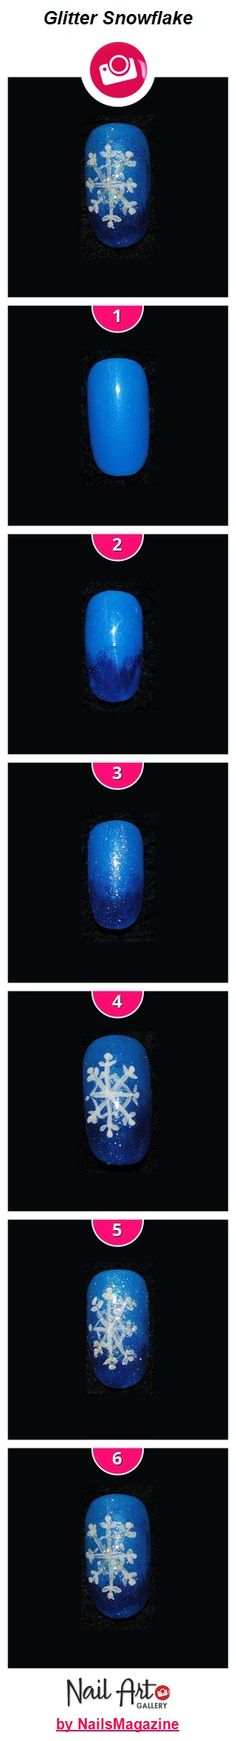 Glitter Snowflake nail art how-to from Nail Art Gallery.